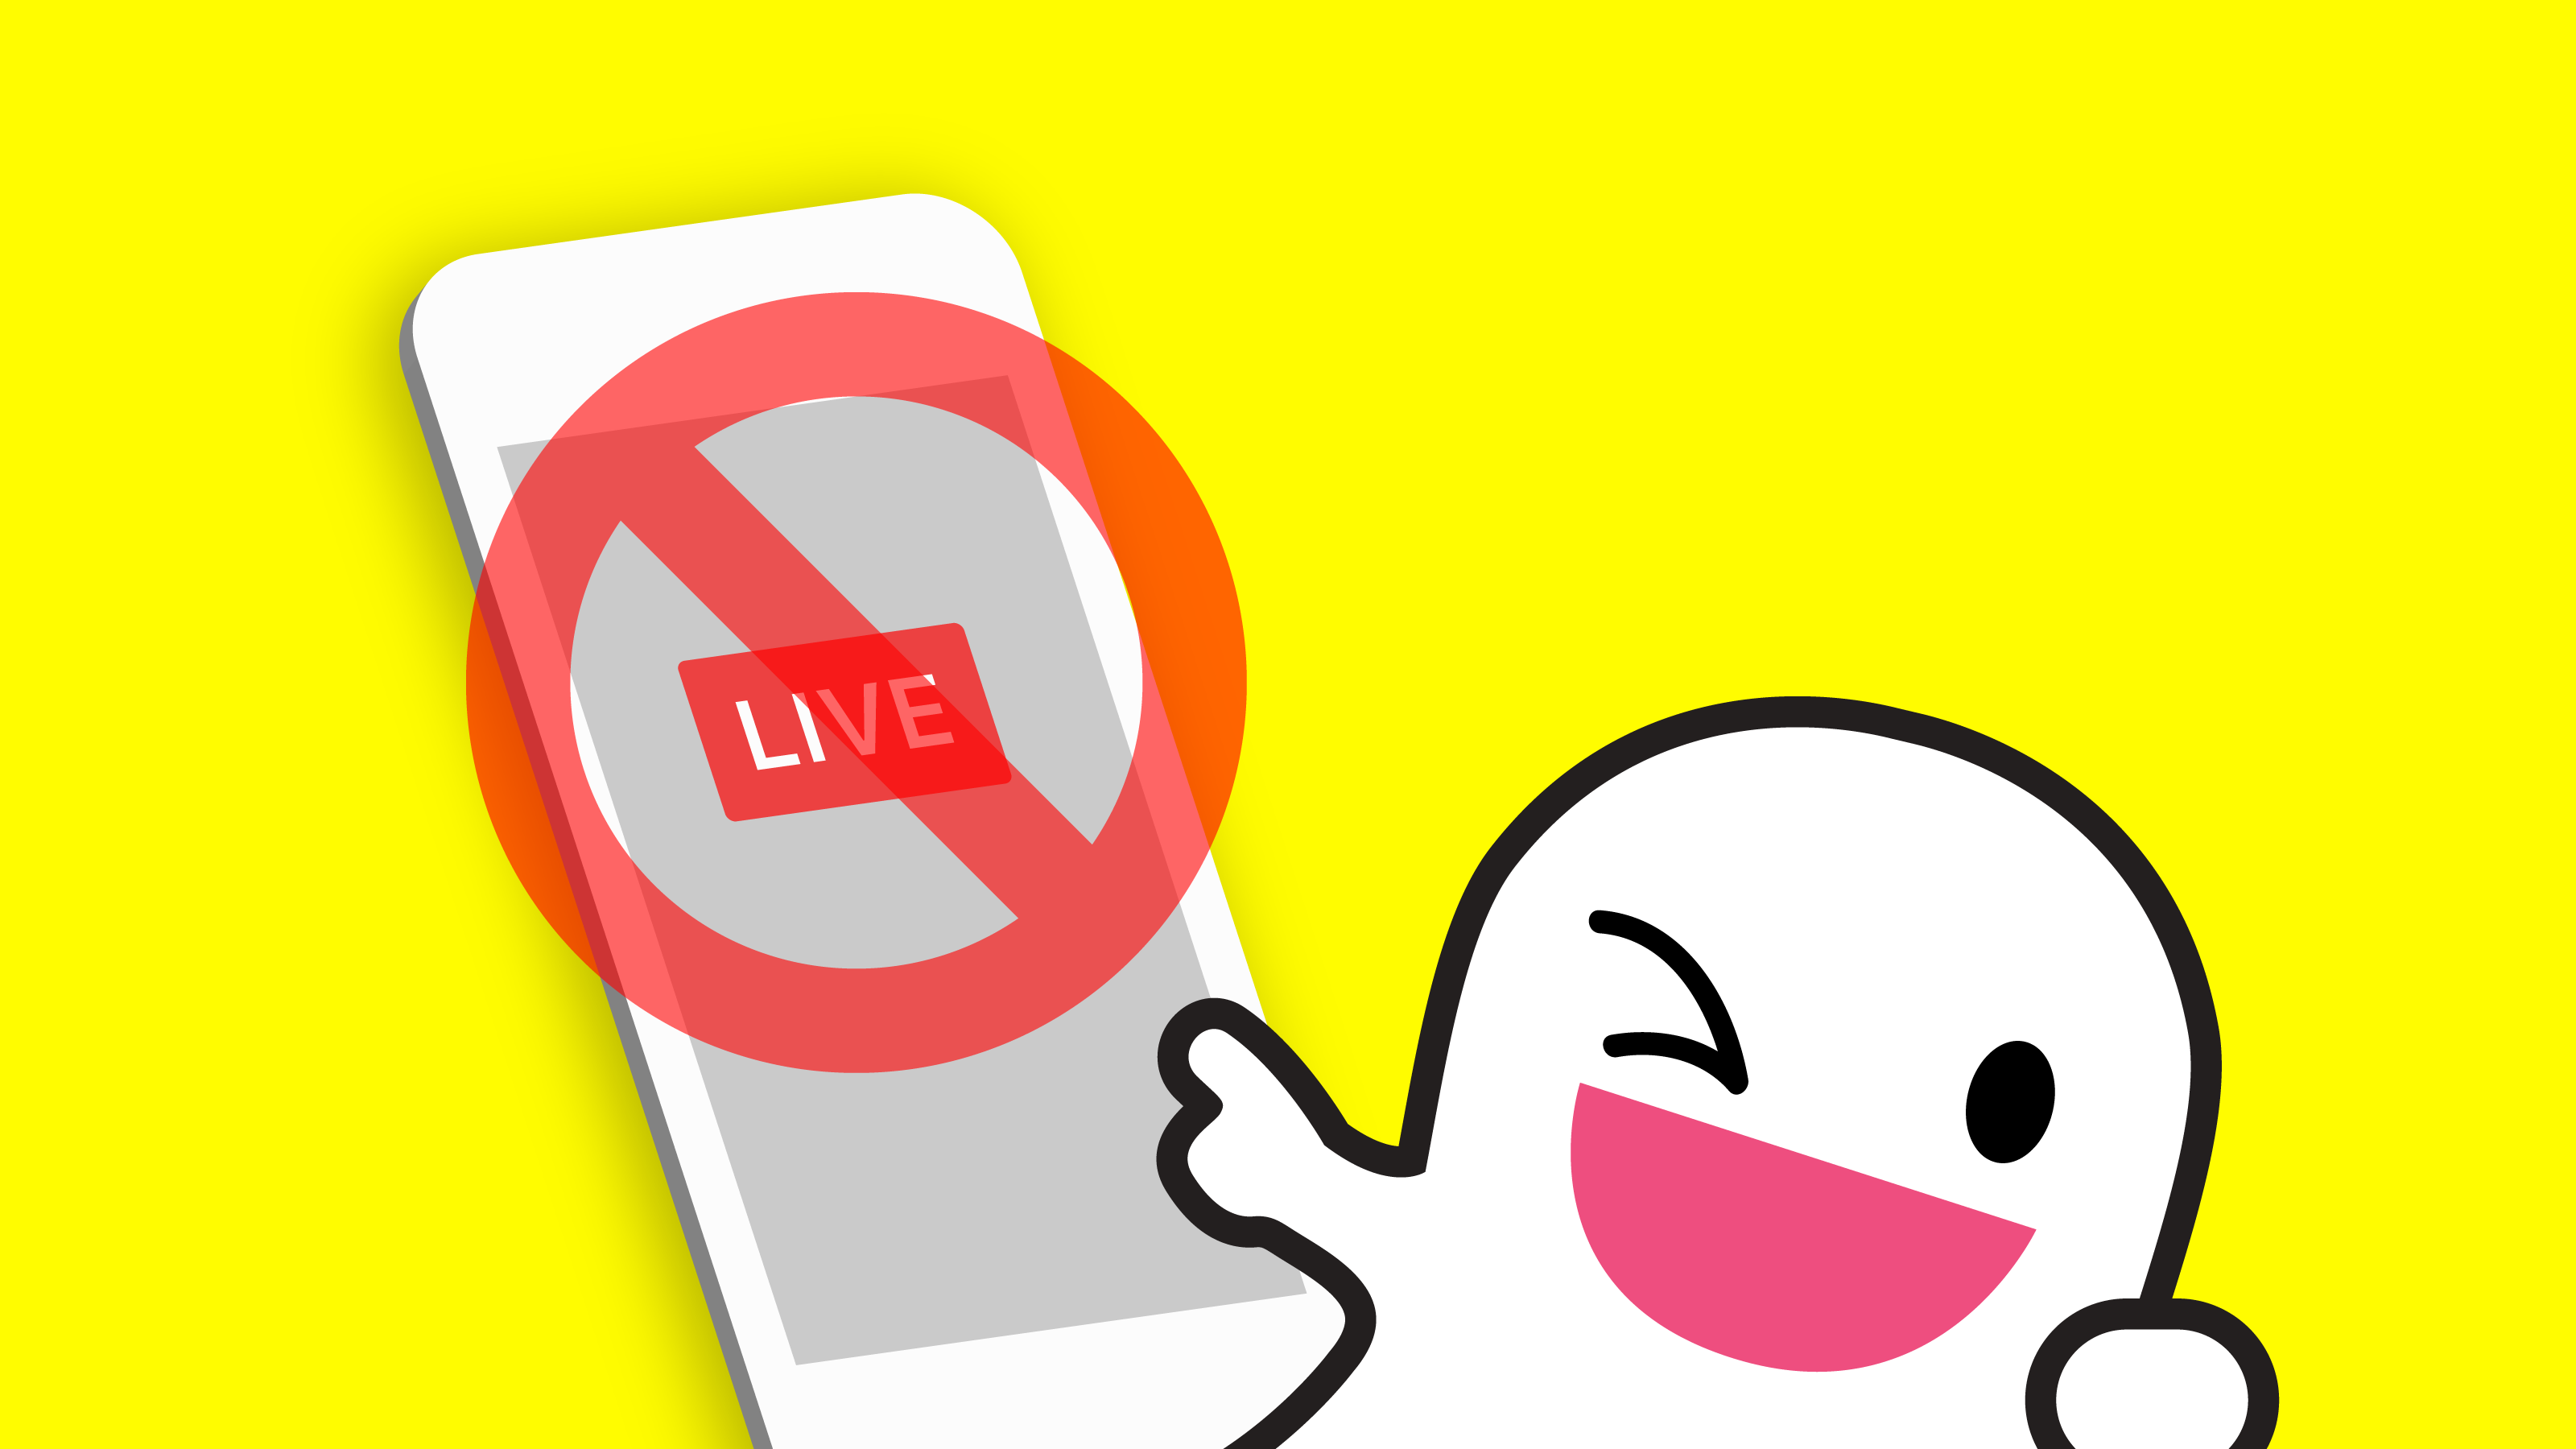 how to use live video on snapchat